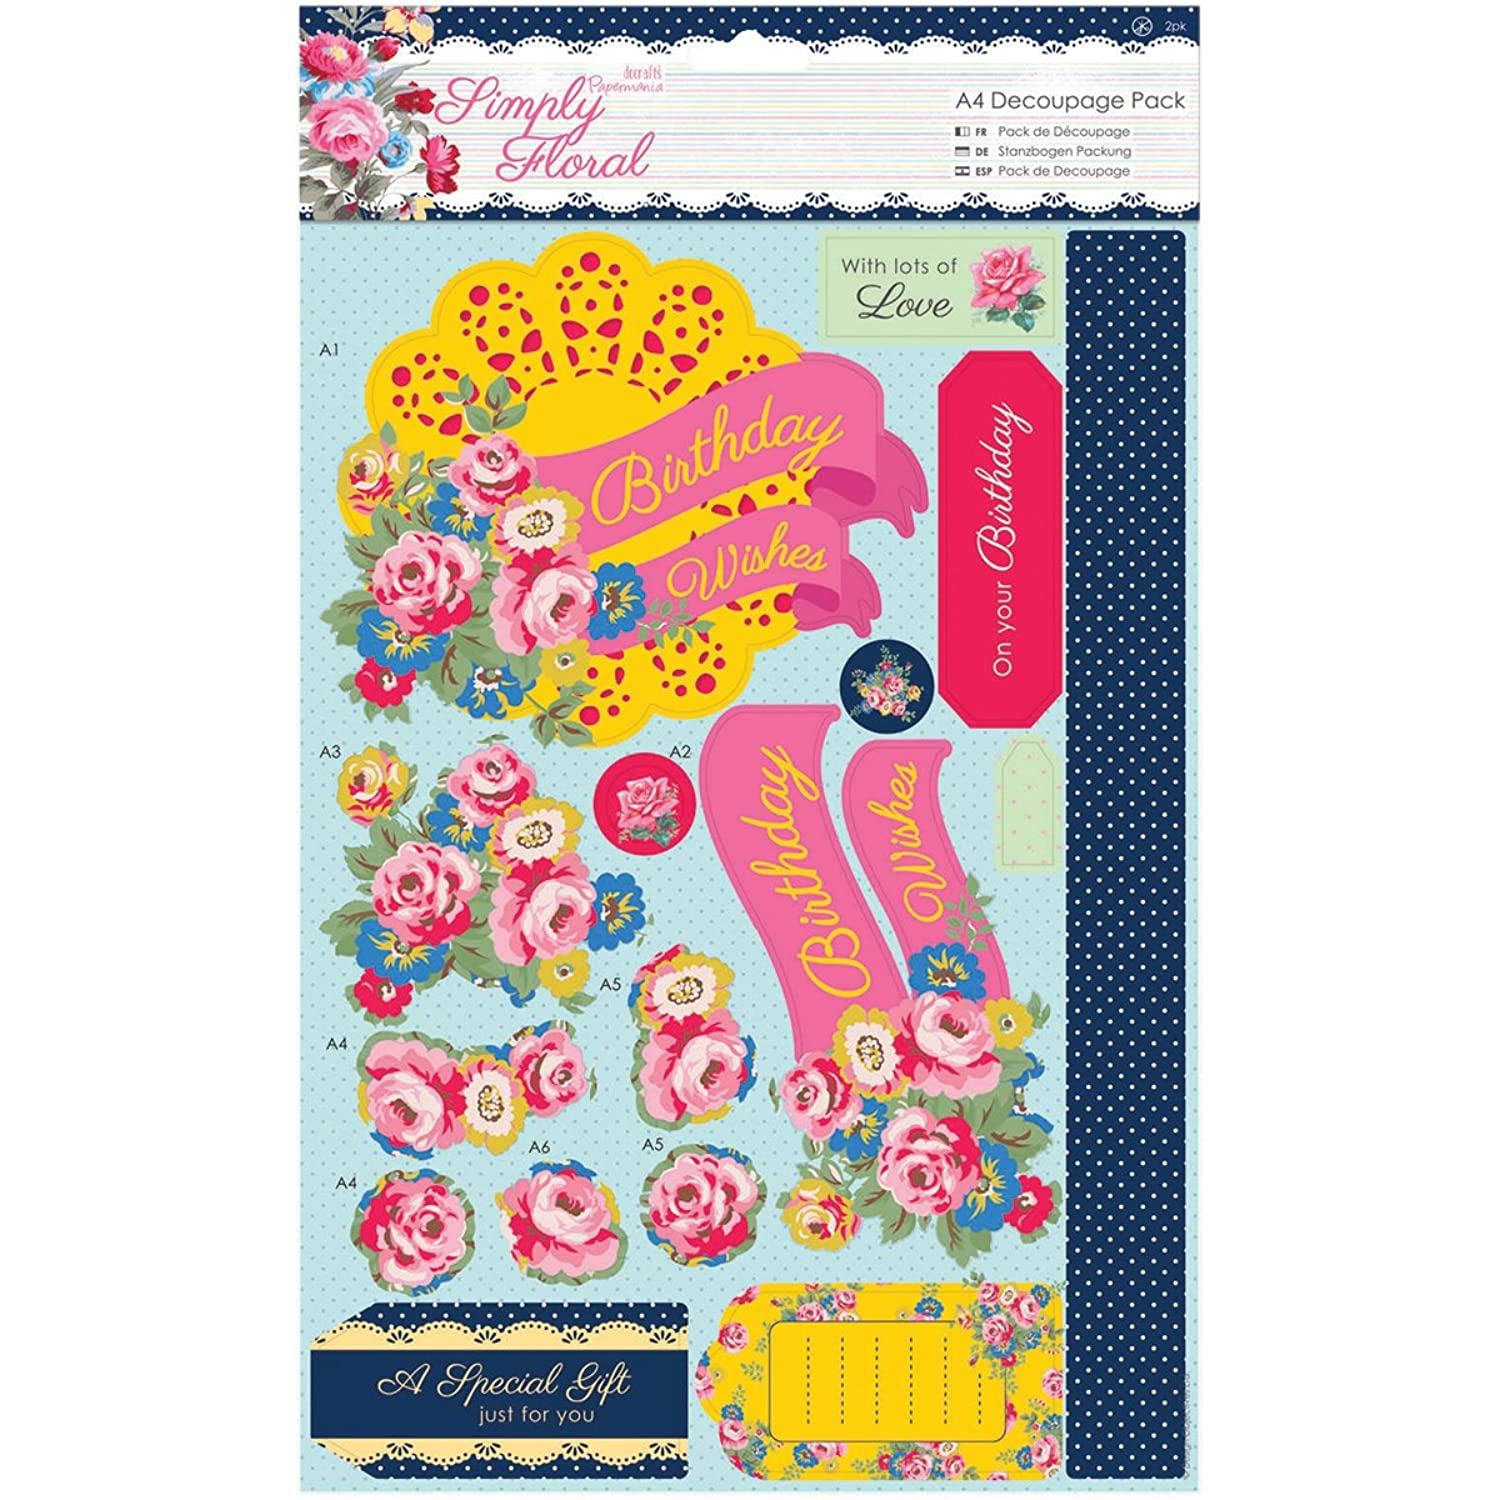 DOCrafts Papermania Simply Floral A4 Decoupage Pack, Bright Blooms